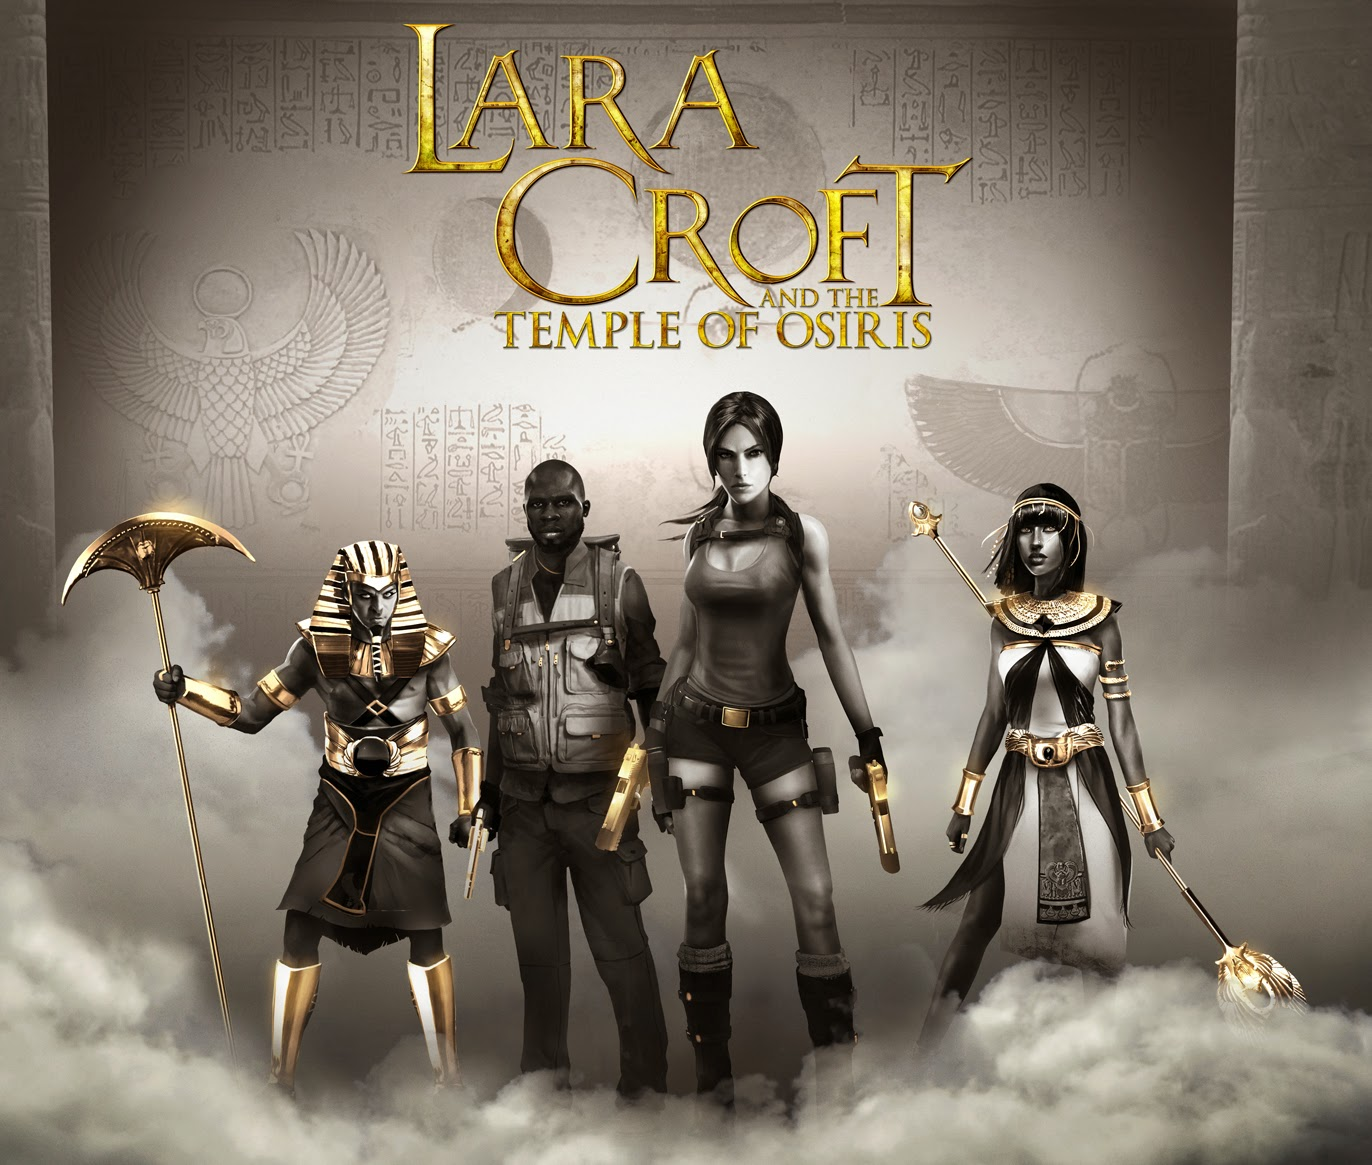 Preview: Enjoyable Multiplayer Co-Op In Lara Croft And The Temple Of Osiris - weknowgamers